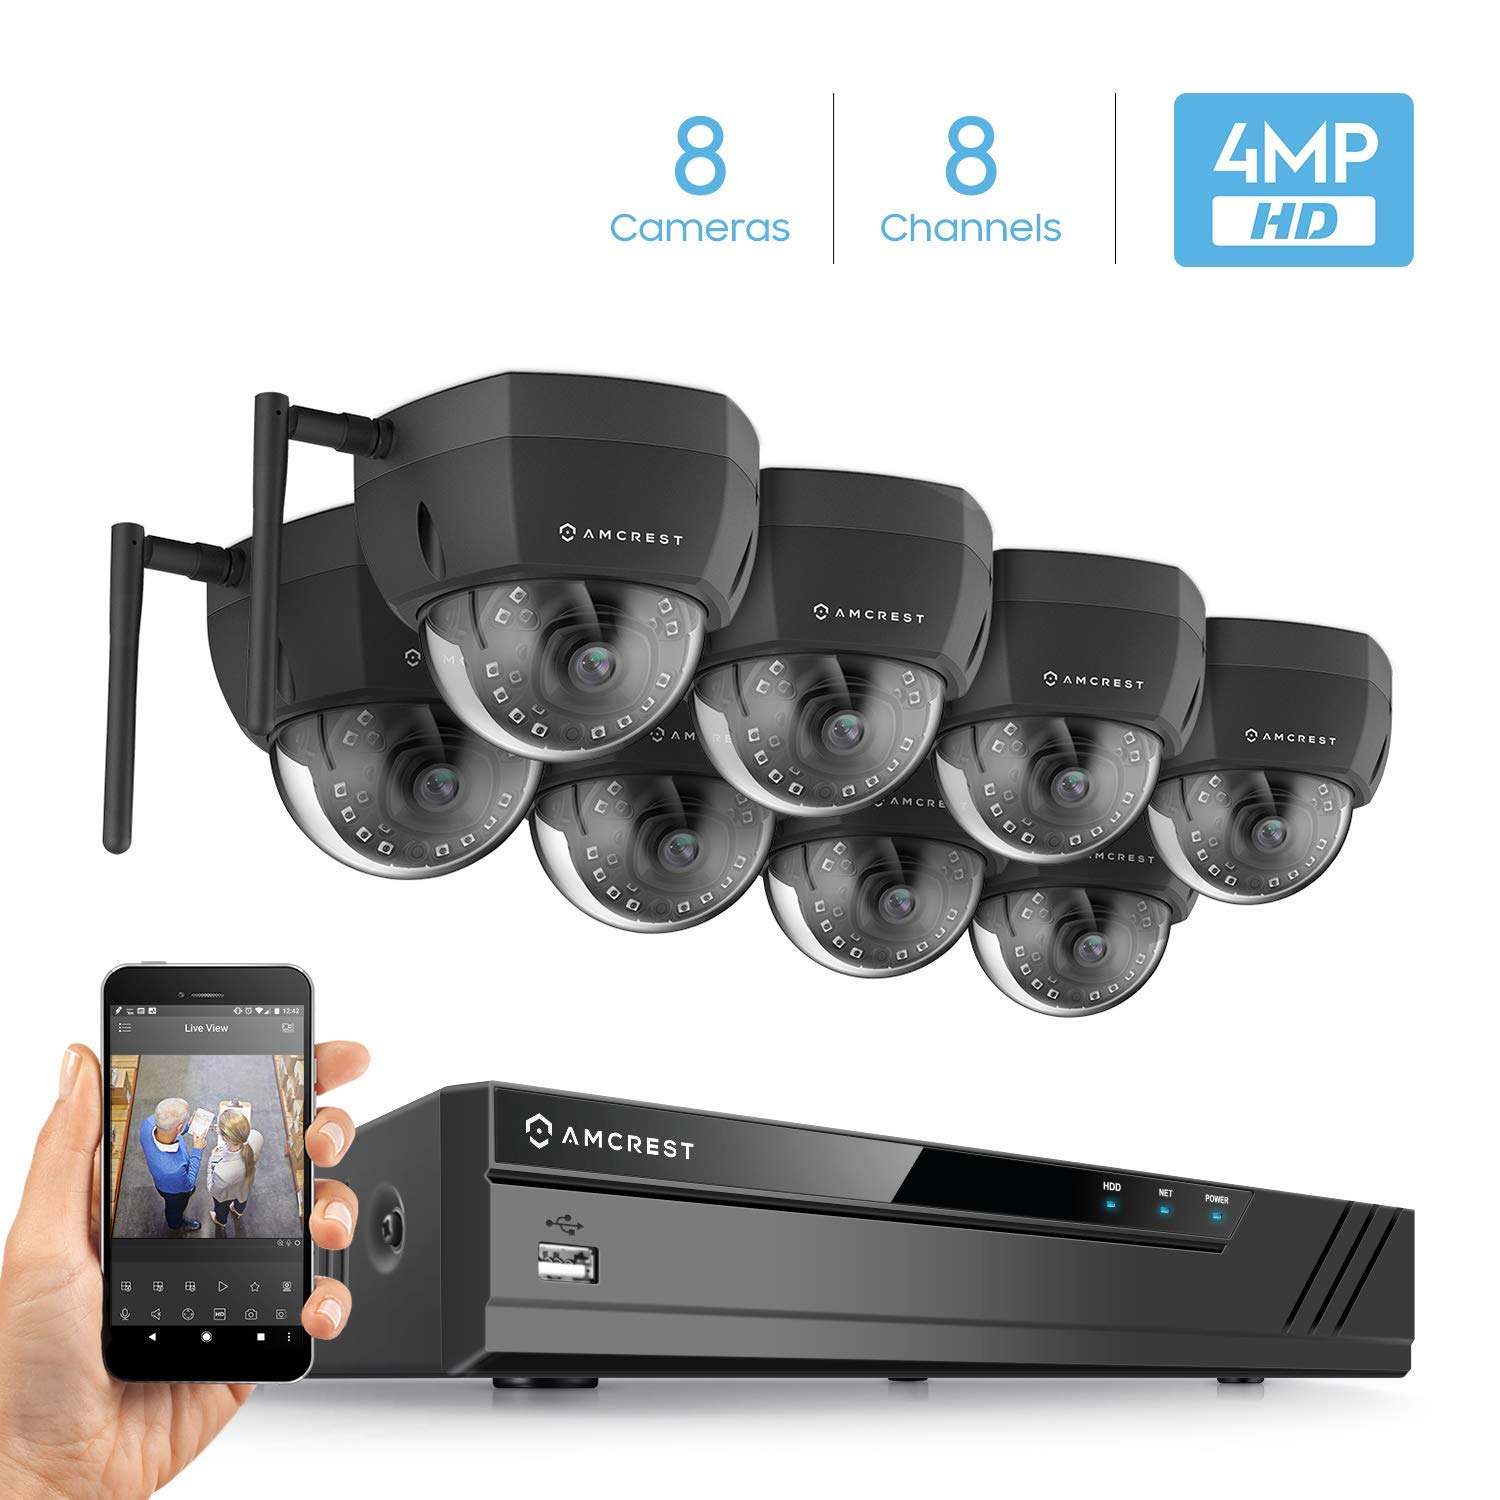 Amcrest 8CH Plug & Play H.265 4K NVR 4MP 1520P Security Camera System, (8) x 4-Megapixel 3.6mm Wide Angle Lens Weatherproof Metal Dome Wi-Fi IP Cameras, 98 Feet Night Vision (Black)